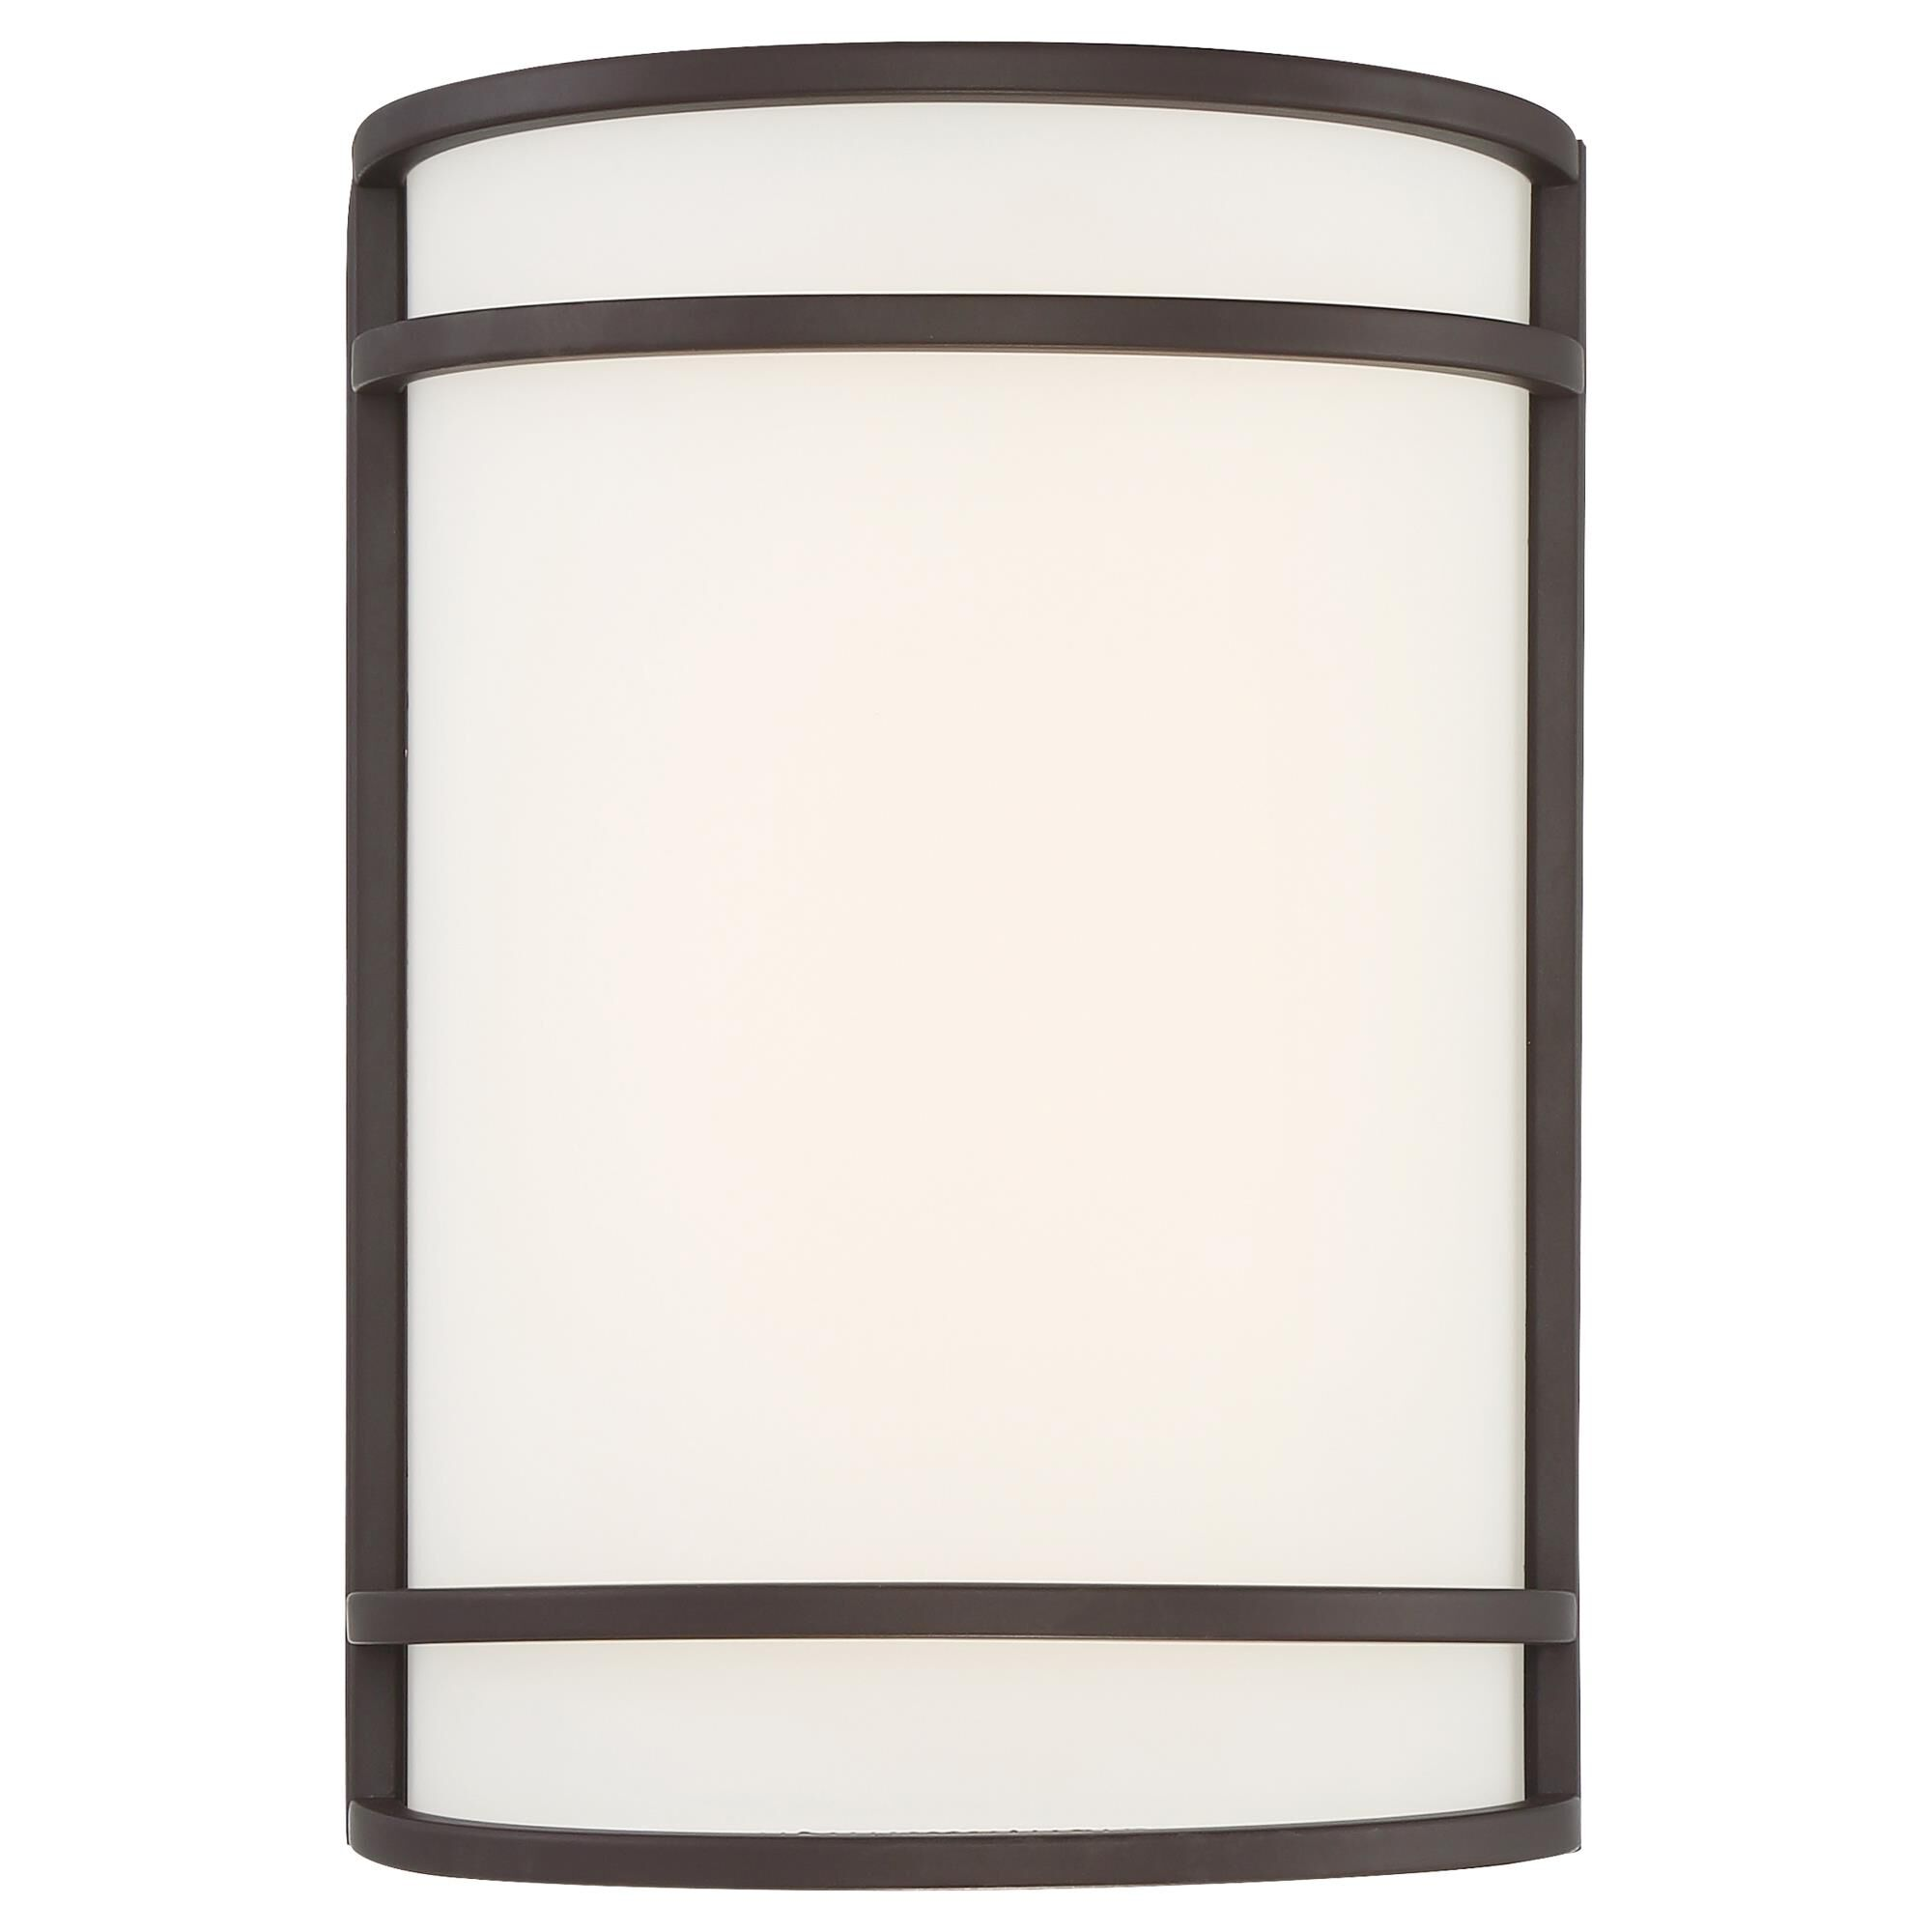 Access Lighting Lola 10 Inch LED Wall Sconce Lola 62165LEDDLP BRZFST Modern Contemporary